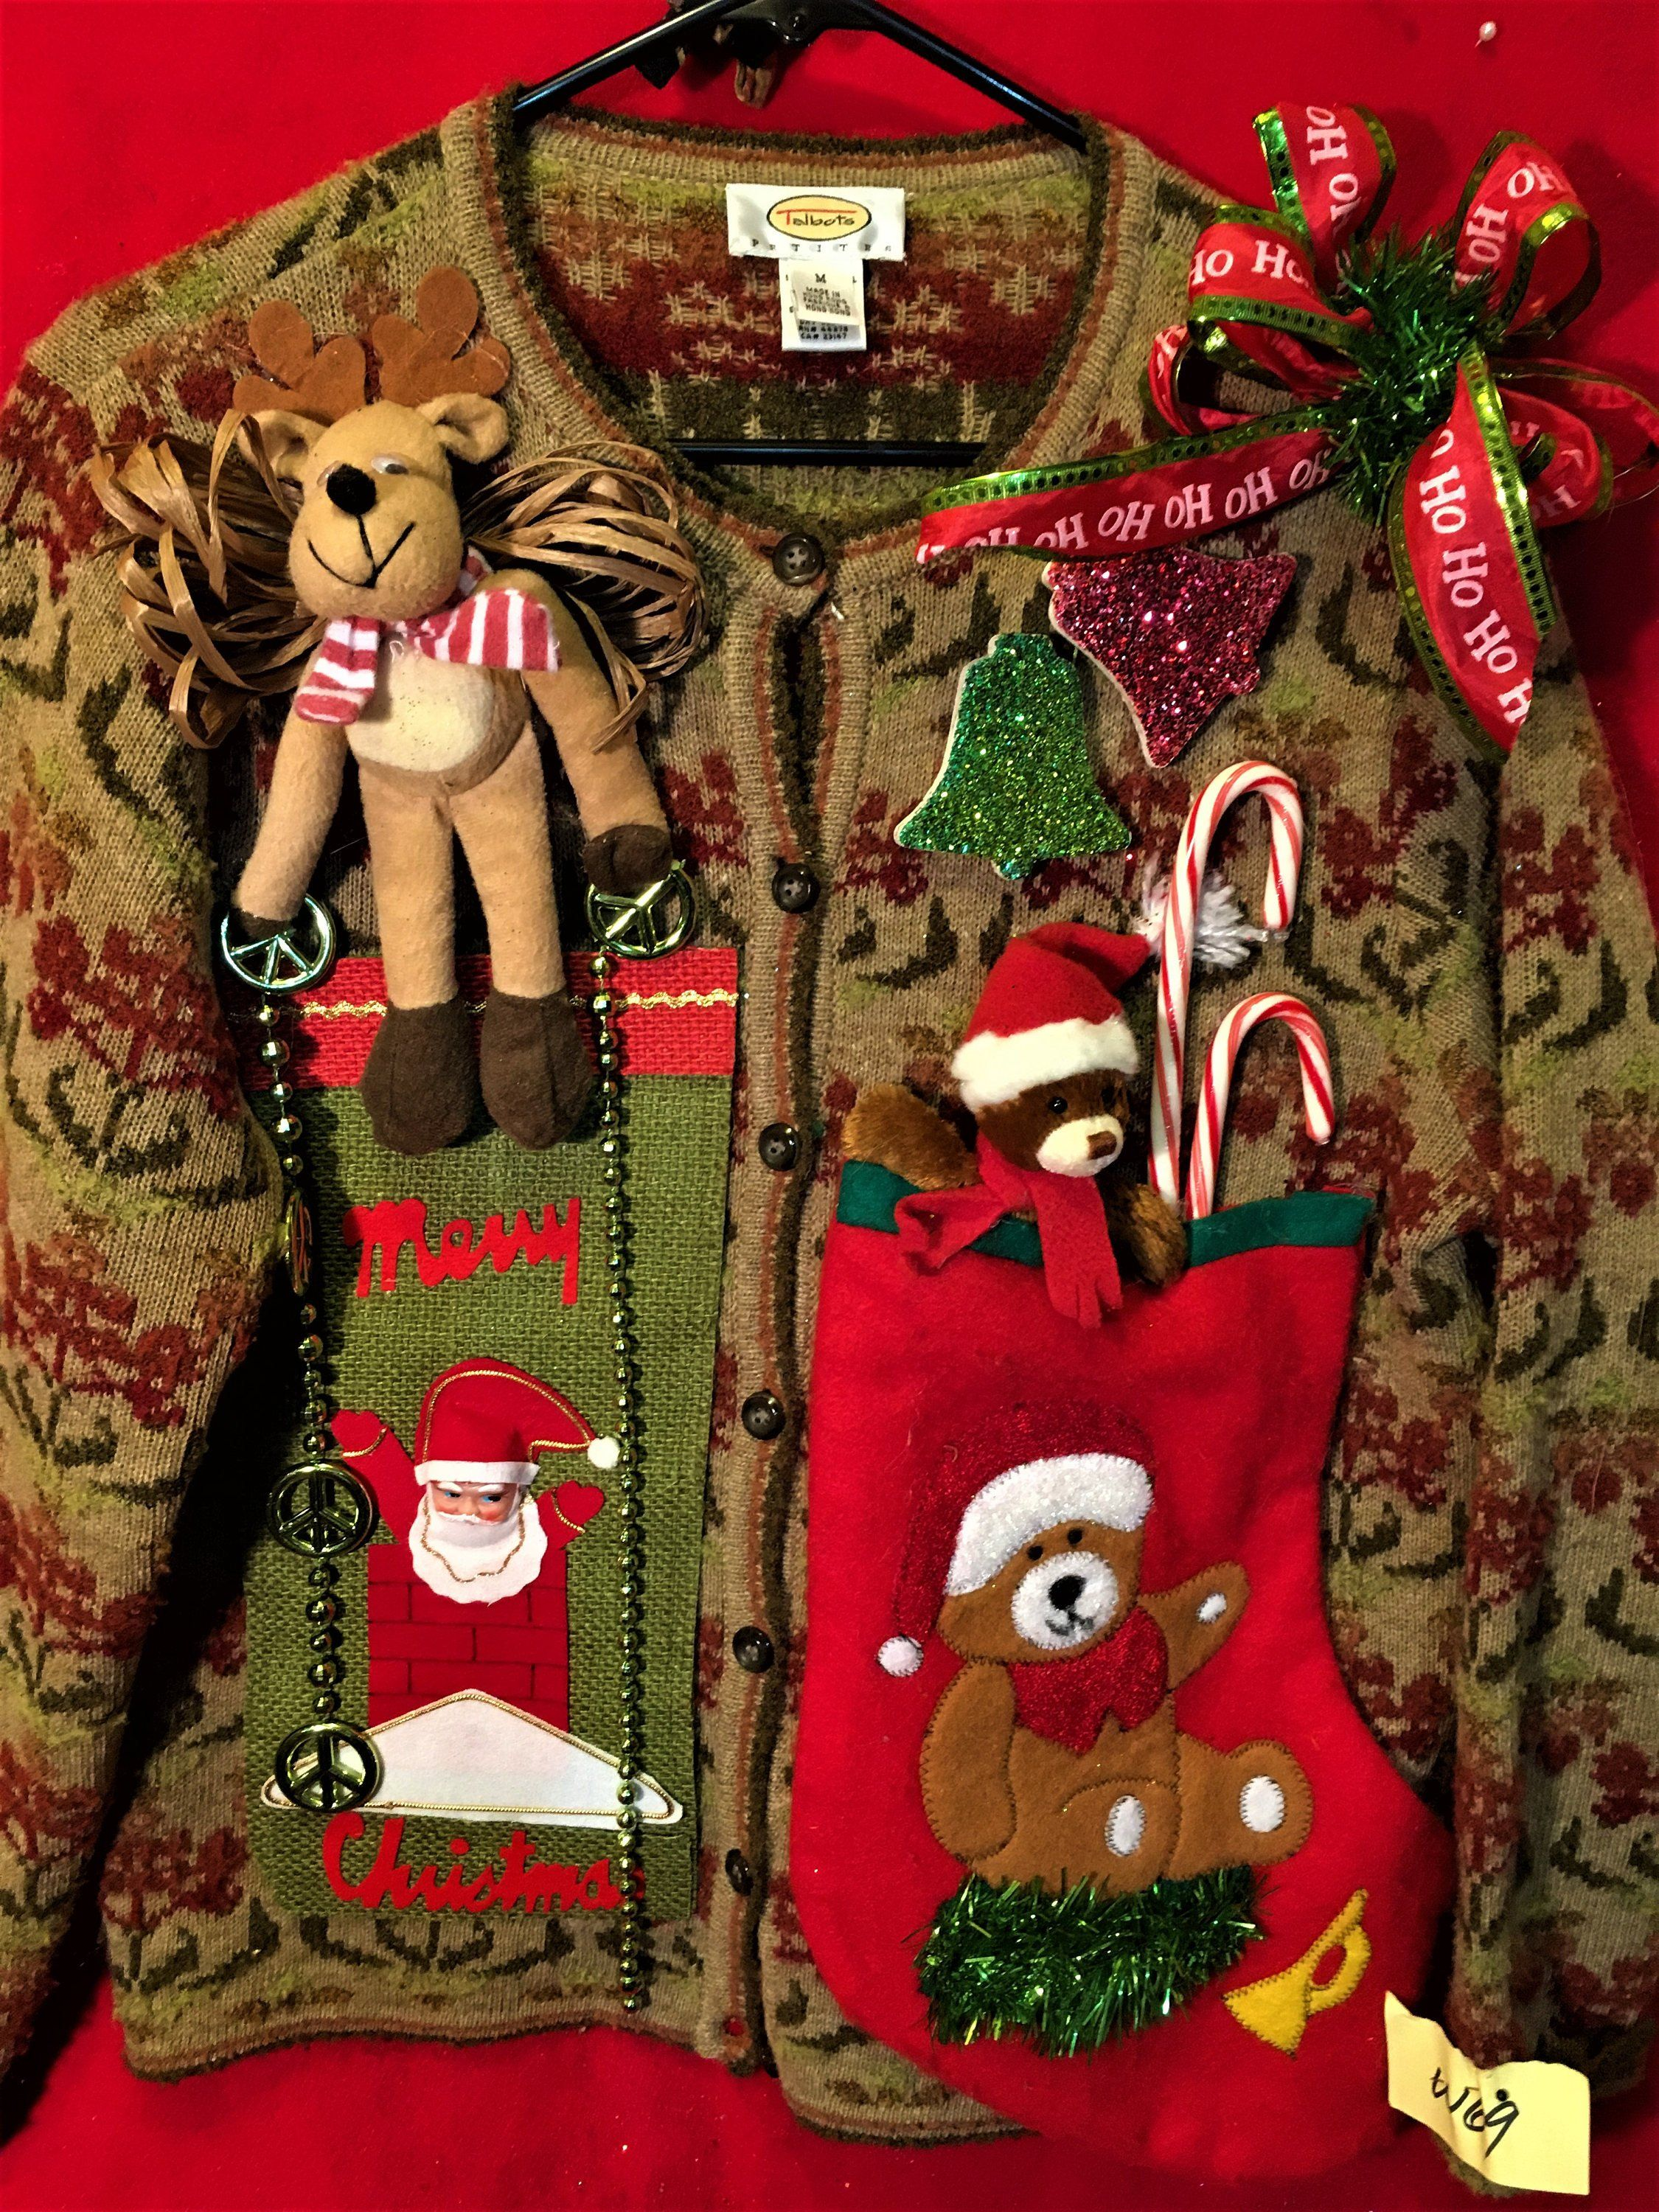 Pin on Ugly Christmas sweater by dizen52